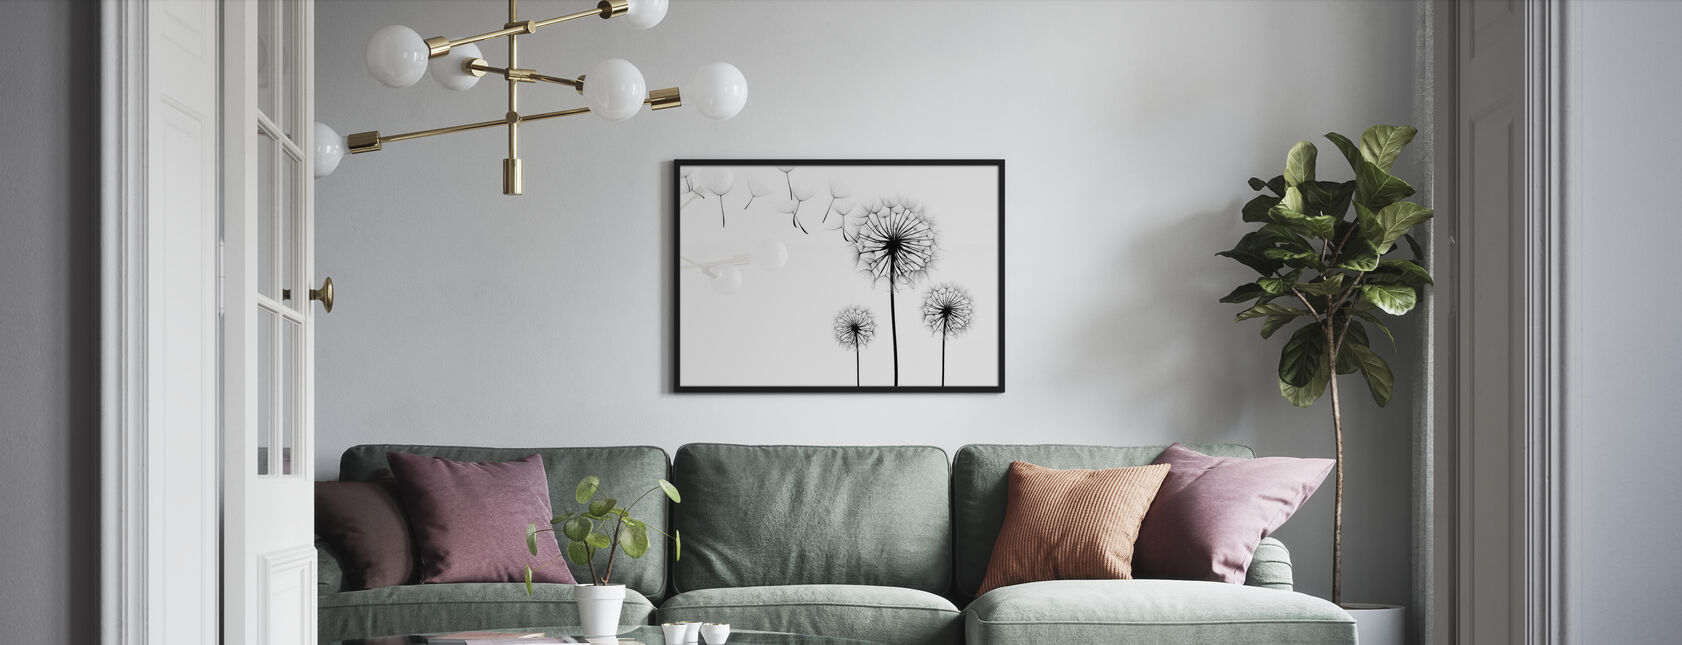 Silhouette of Dandelions Seeds, black and white - Framed print - Living Room